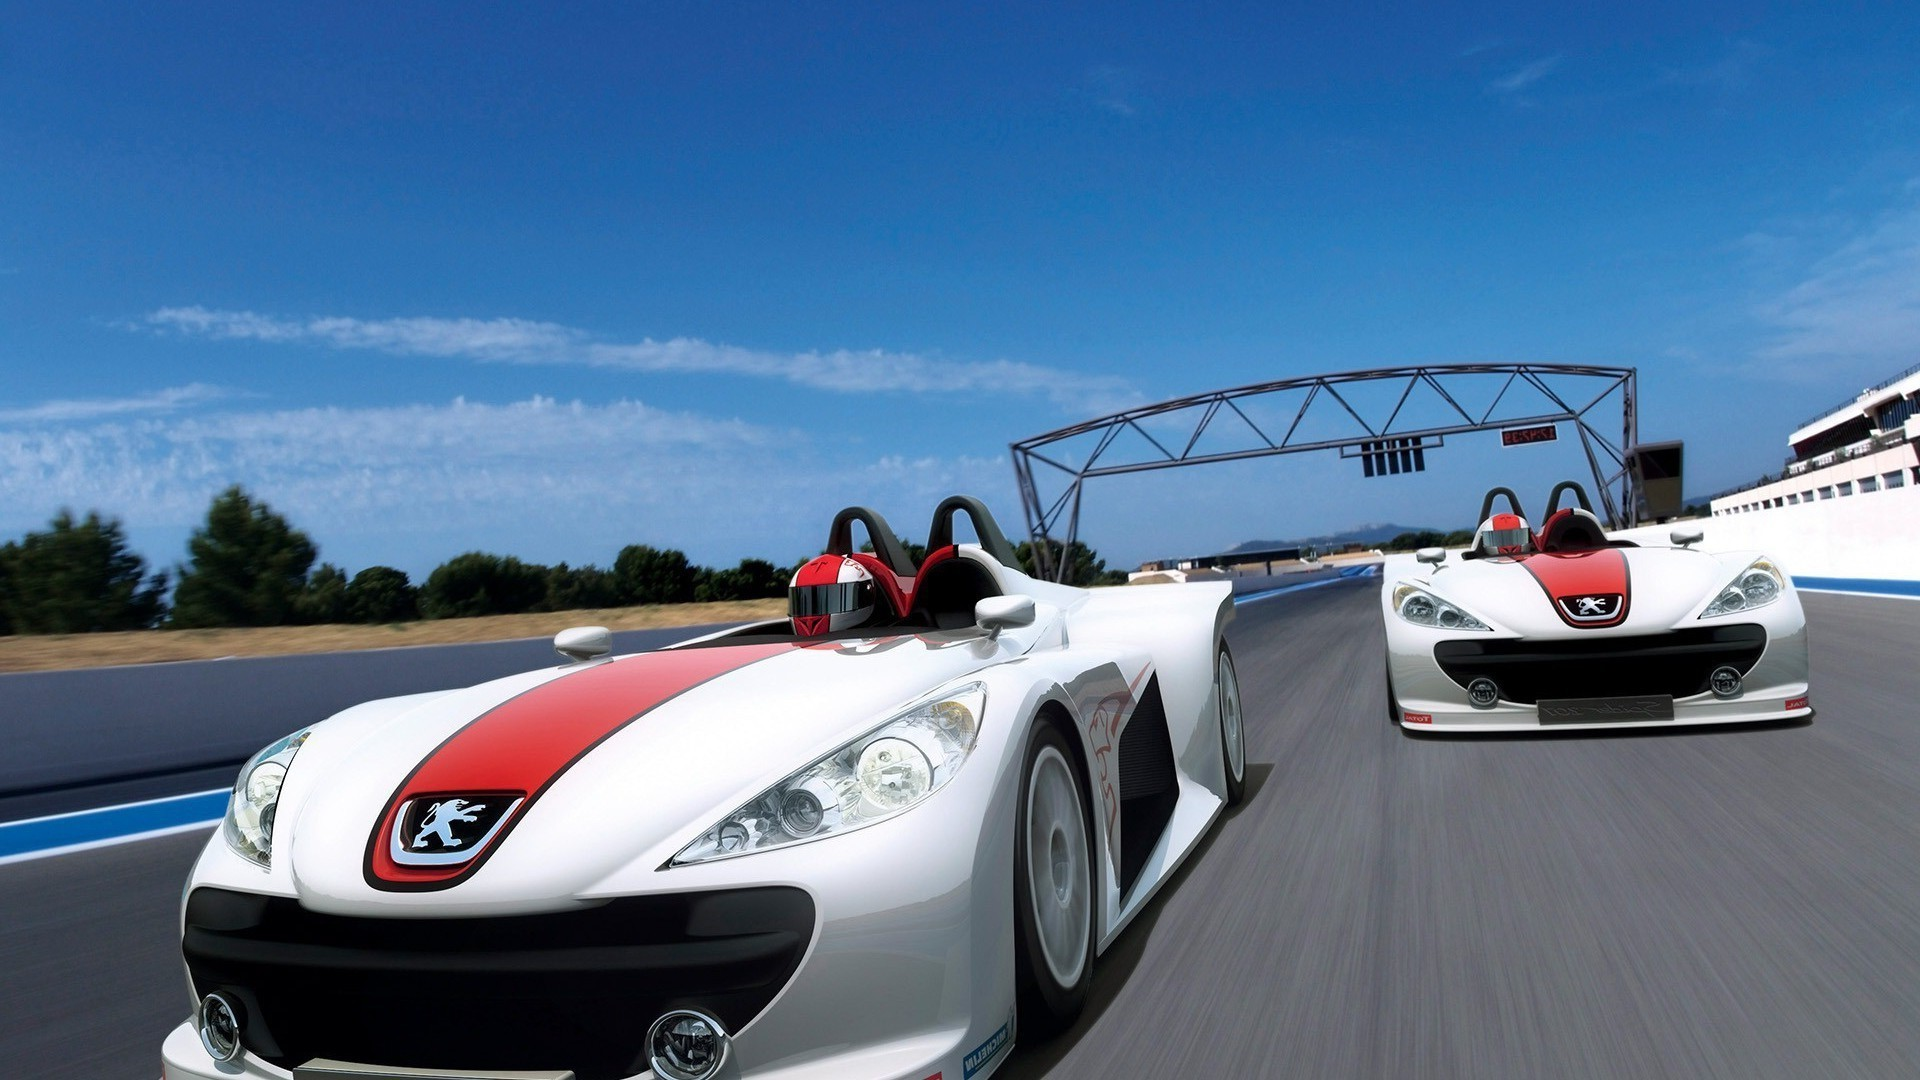 race car car vehicle fast race drive transportation system action hurry competition asphalt convertible